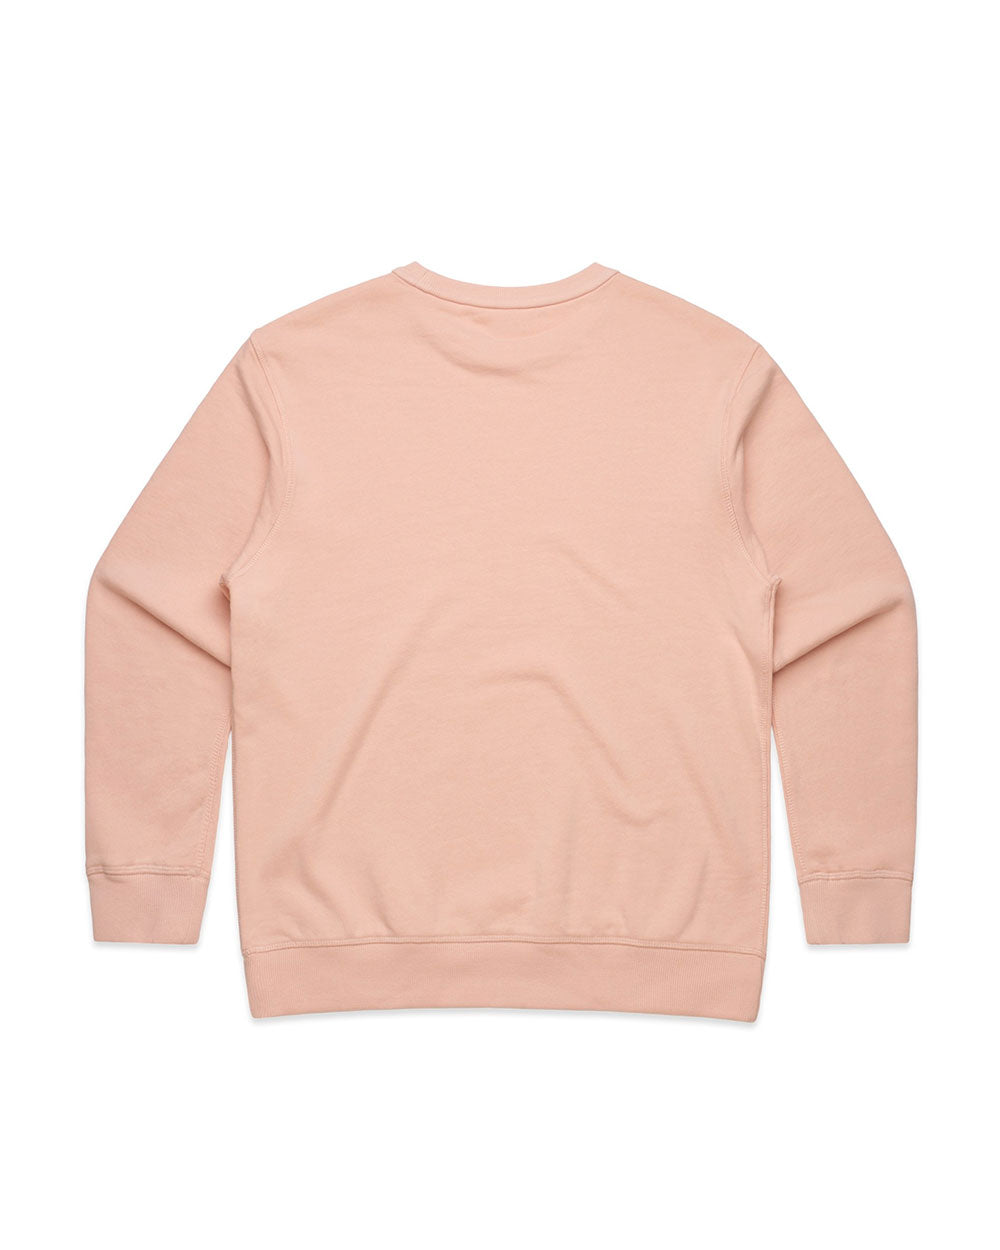 Ladies Signature Pale Pink Crew - Threadbox